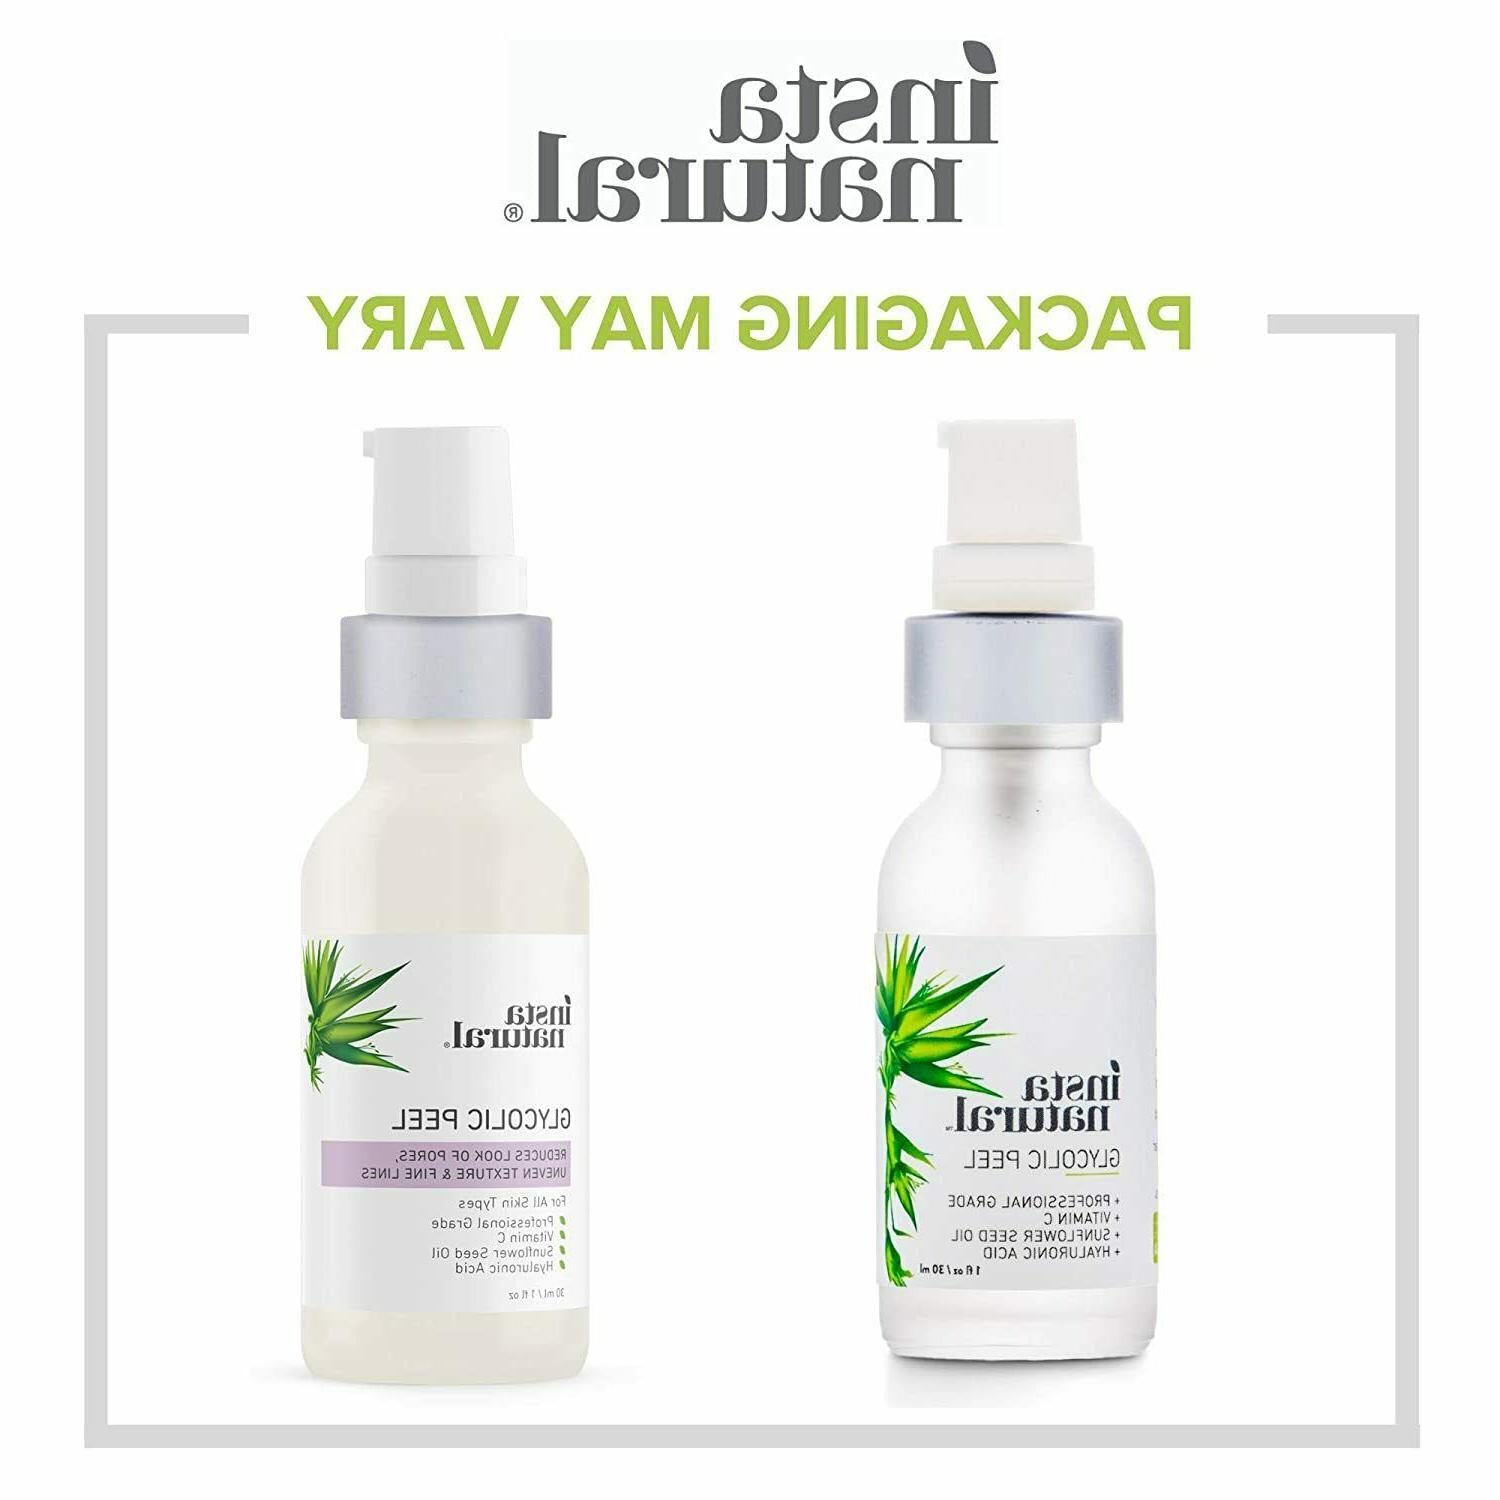 Glycolic Acid - With Hyaluronic Best Treatment